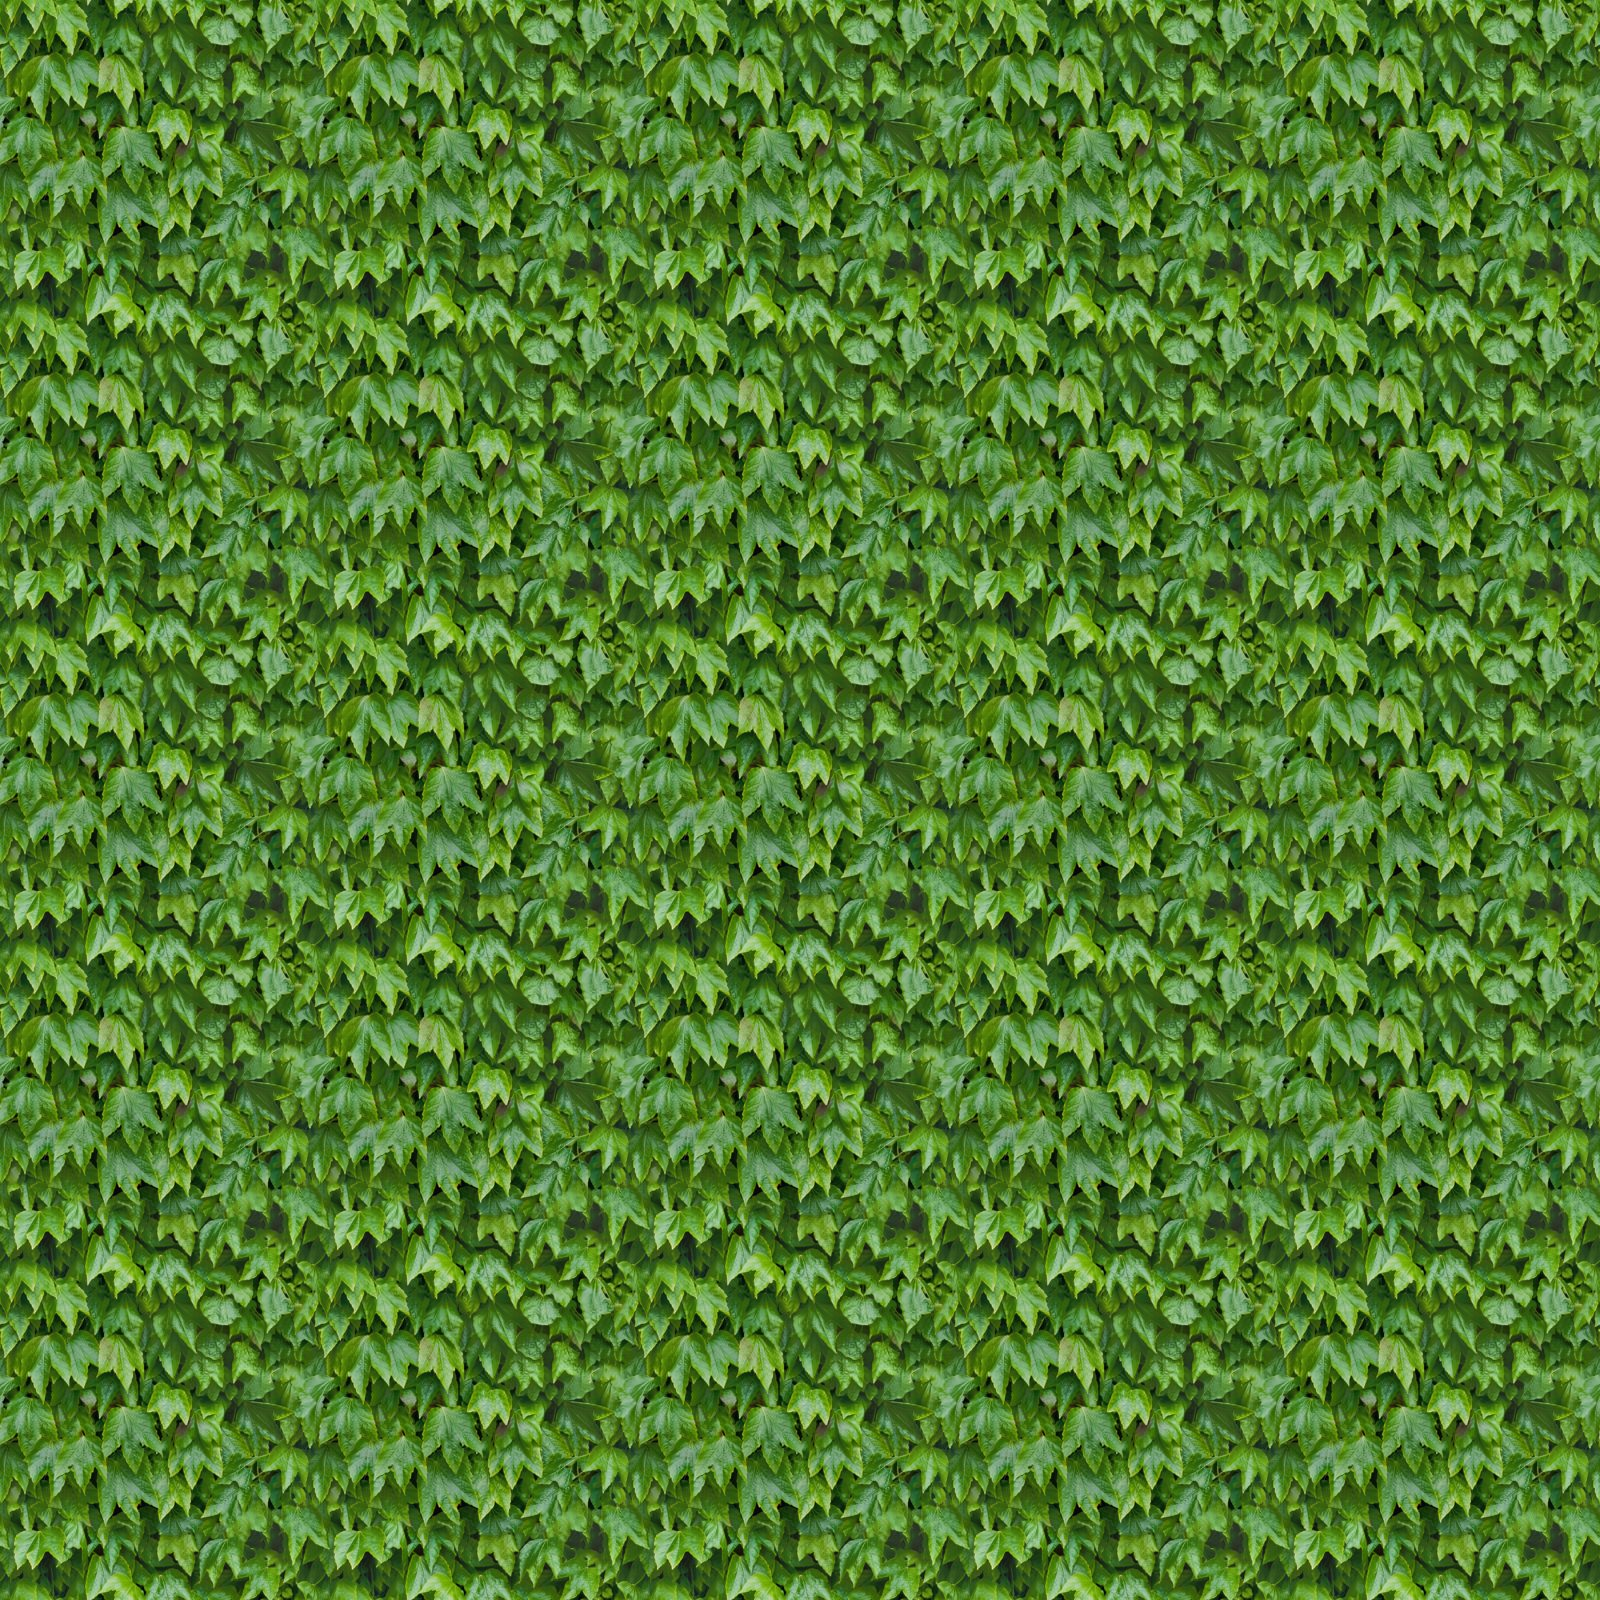 Ivy Leaves Seamless Texture Background